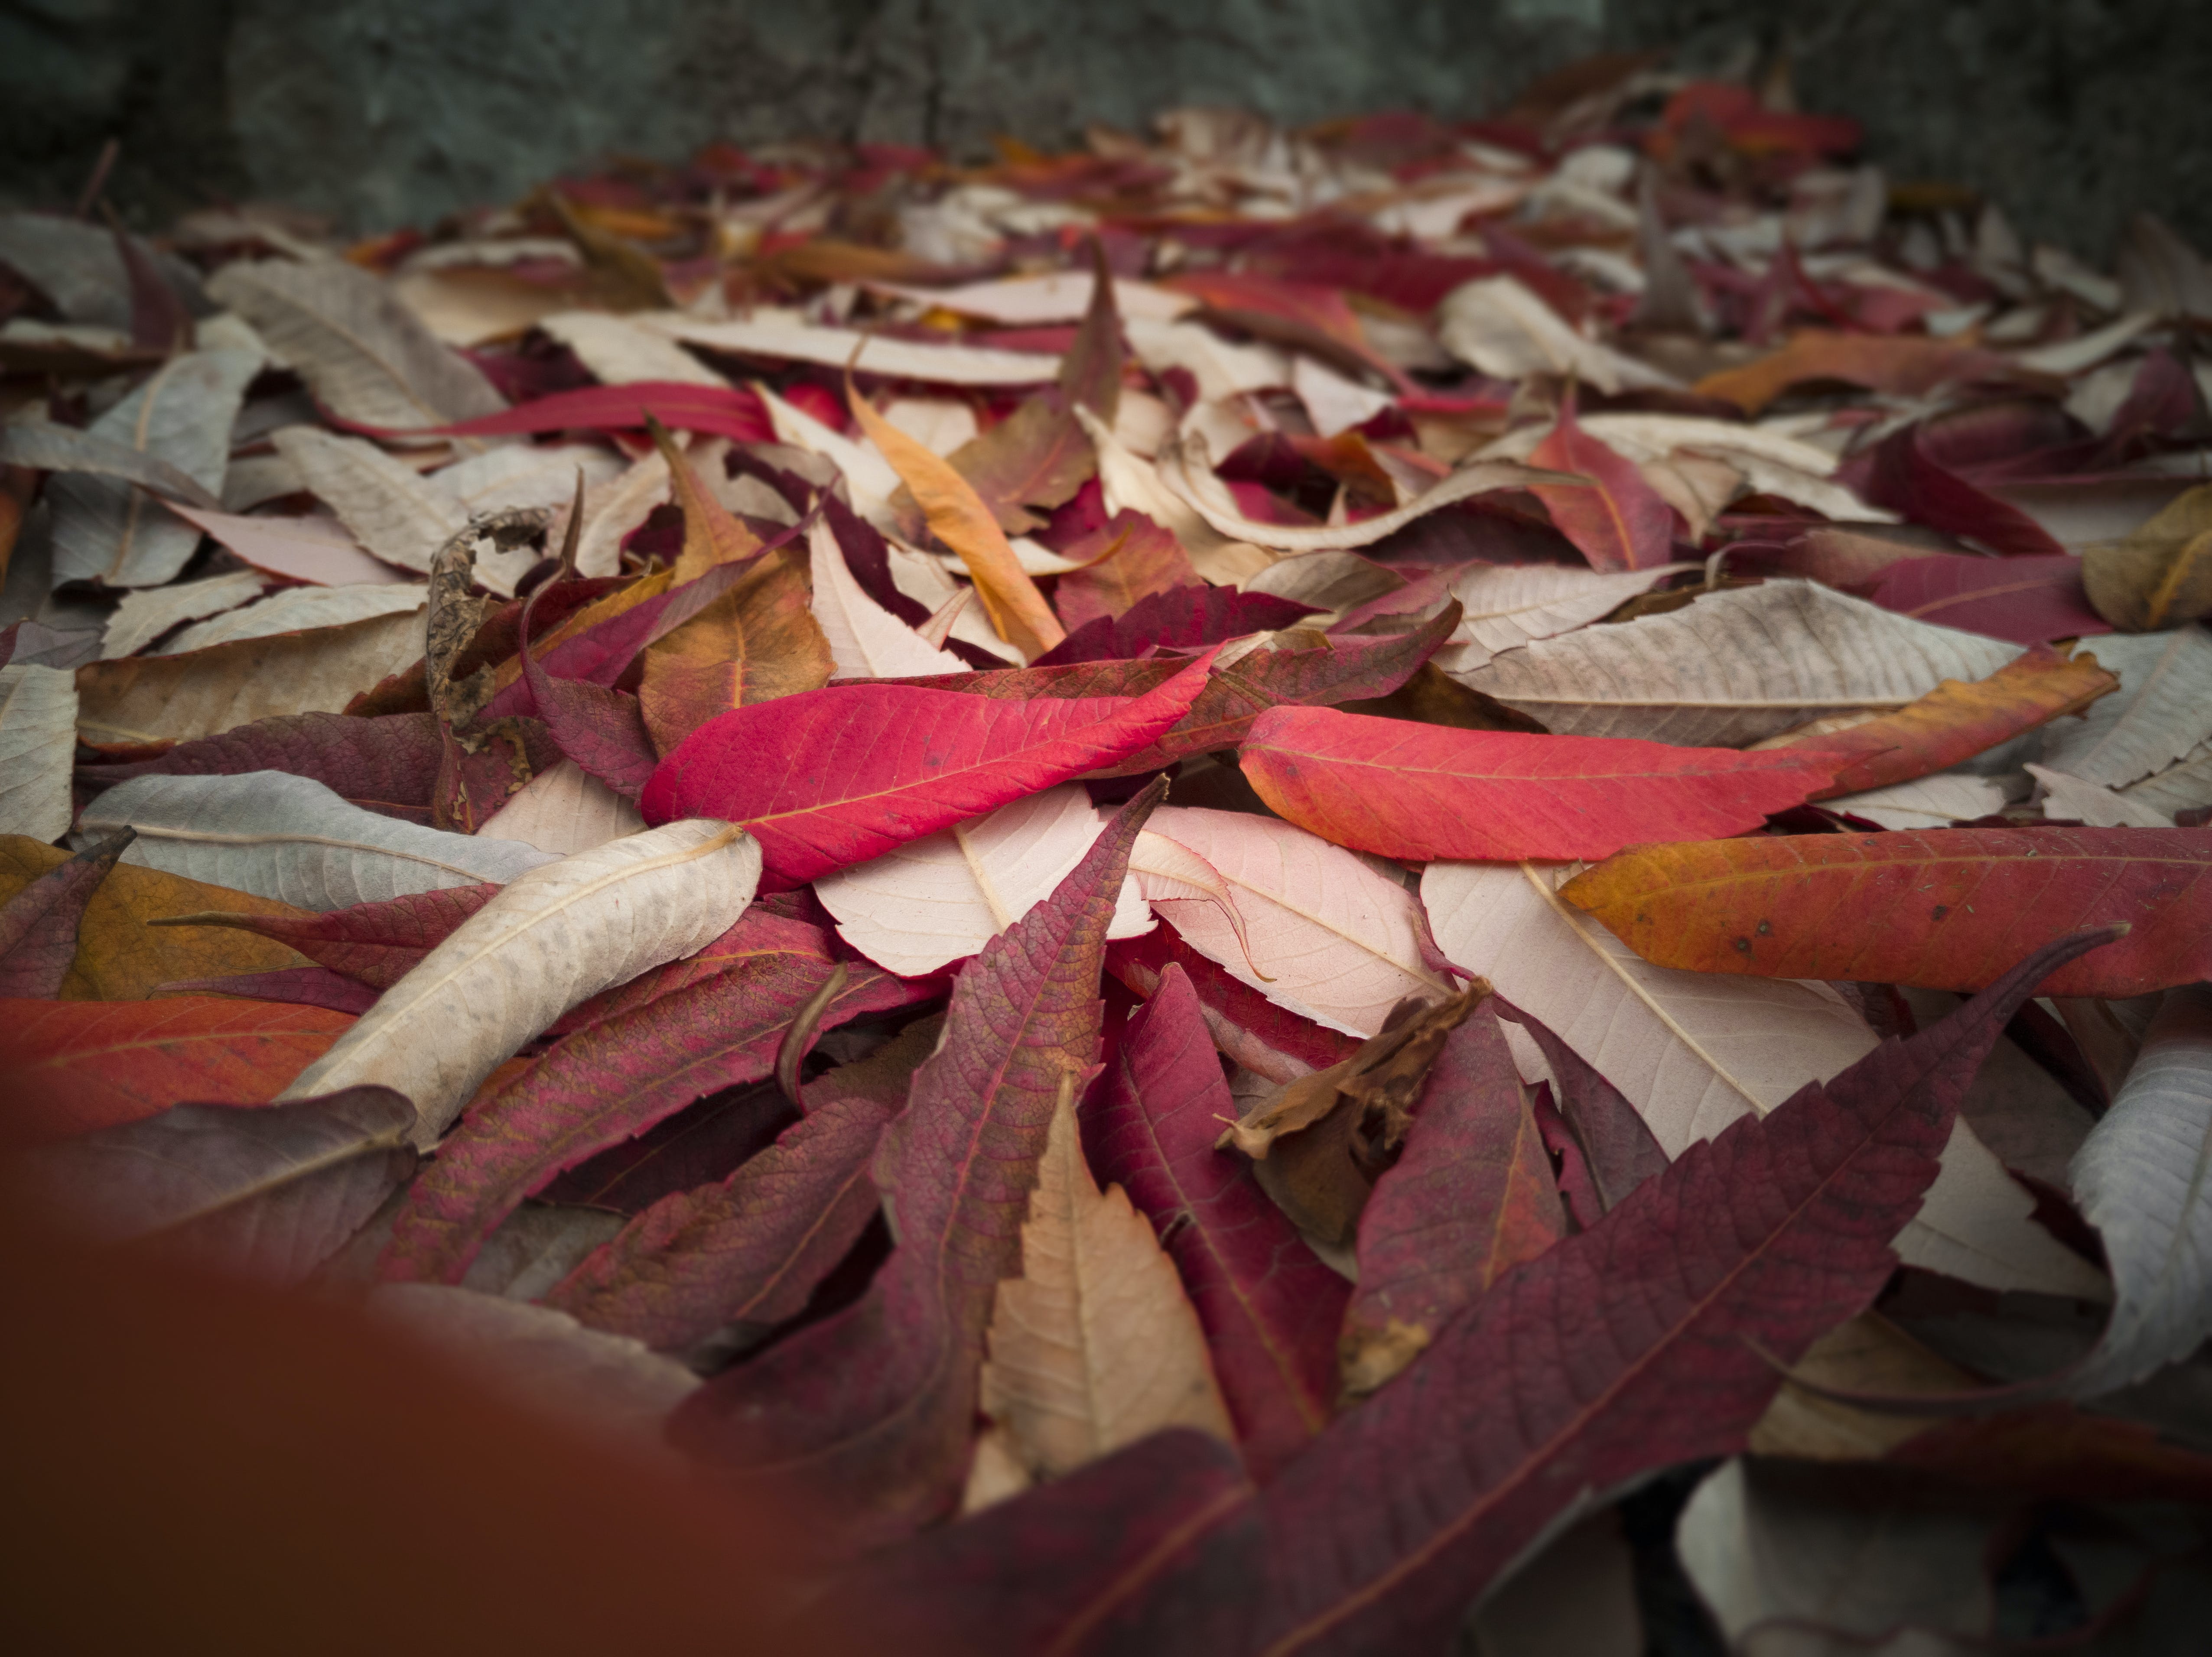 Free stock photo of fall colors, fall leaves, fallen leaves, mood